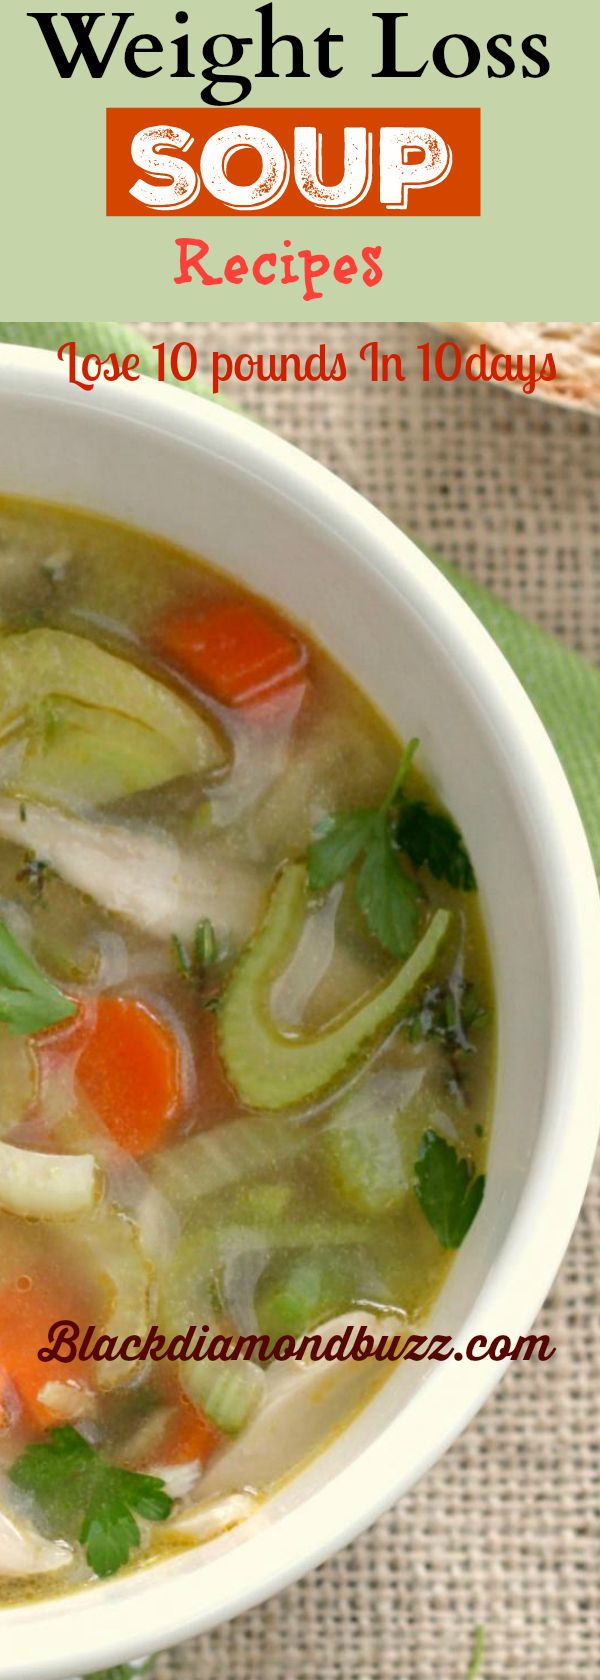 Weight Loss Soup Recipes to Lose 10 Pounds in 10 Days – This 7 Day Soup Diet Plan Will Flush Out Fat in the Belly.